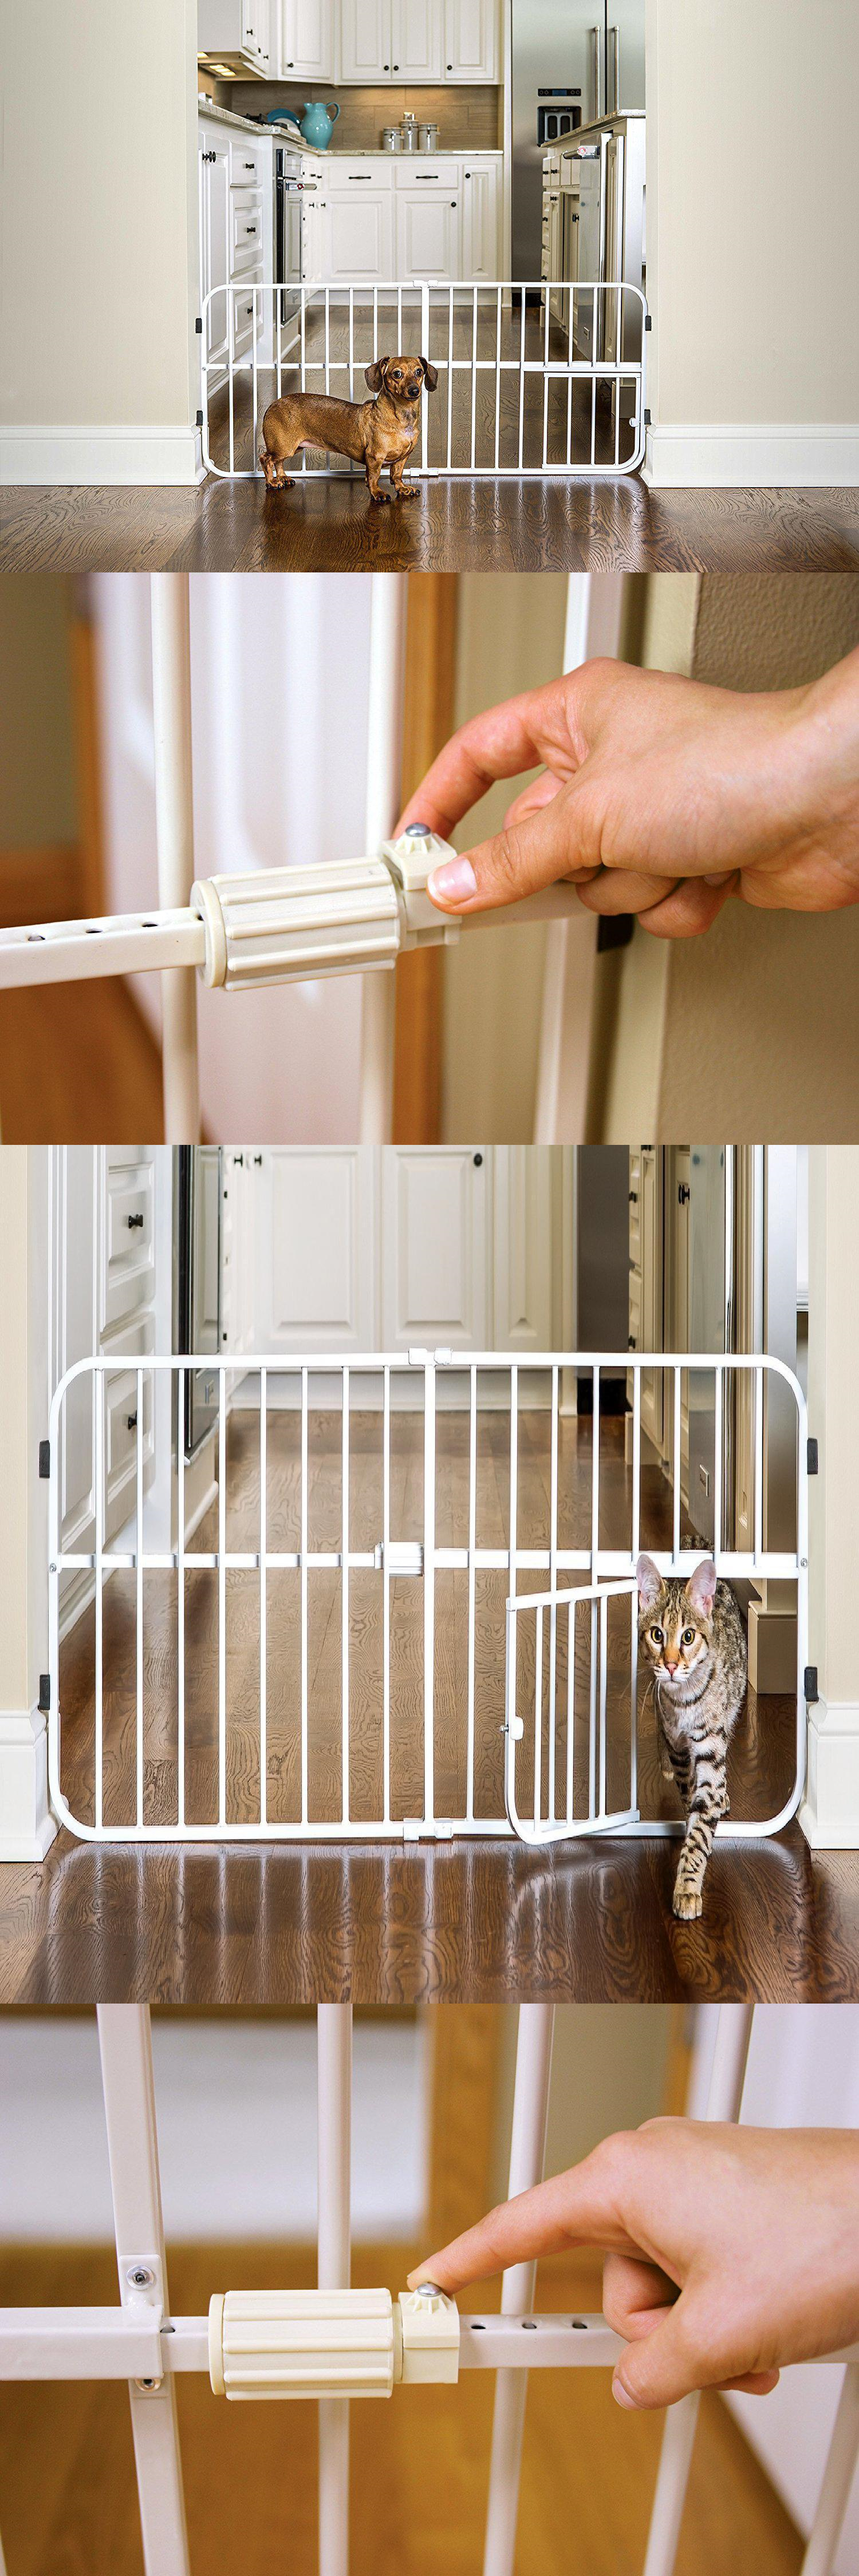 Fences and Exercise Pens Expandable Baby Gate Small Pet